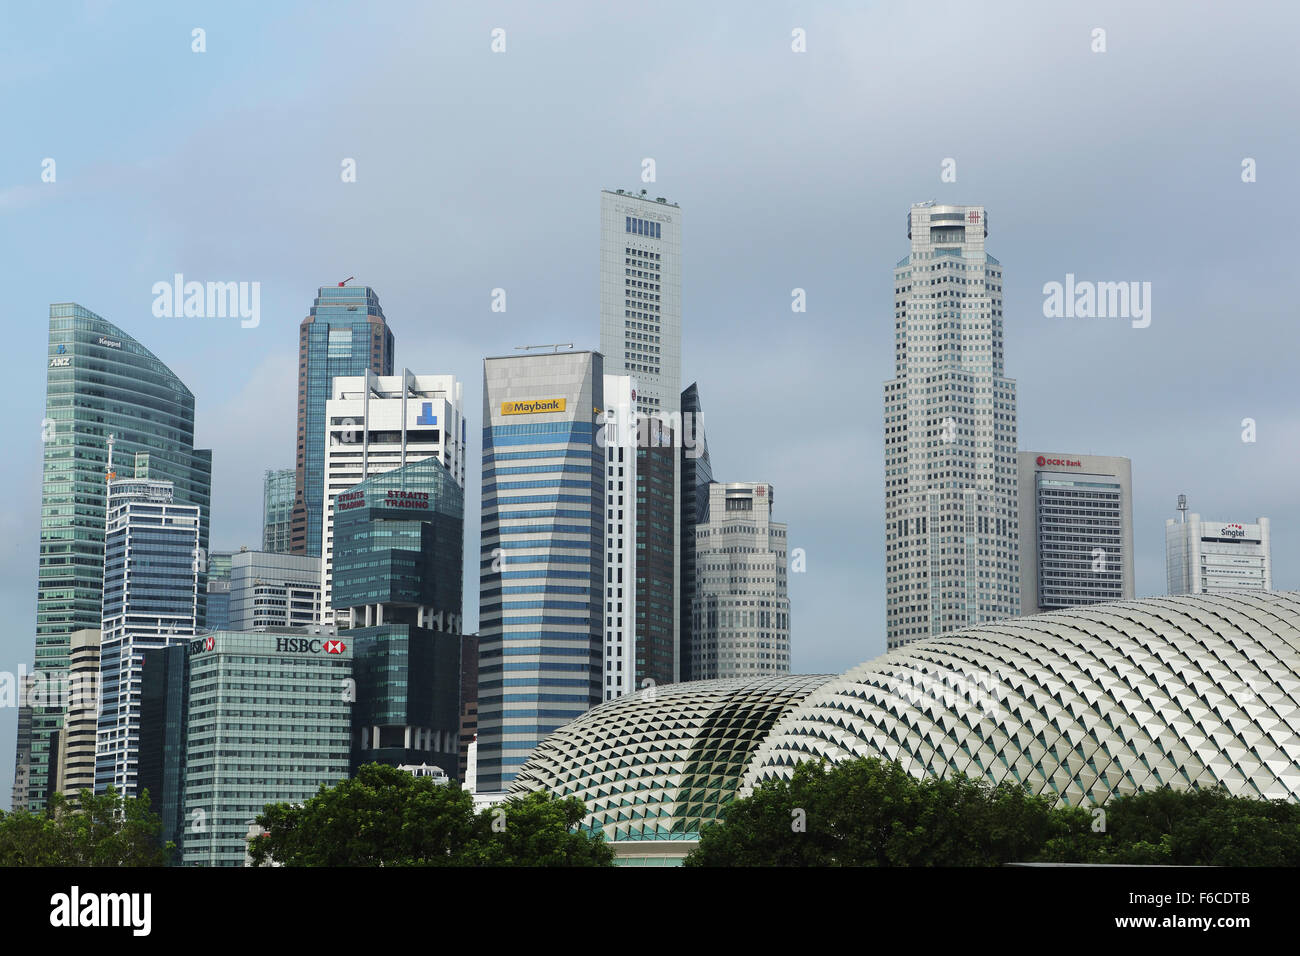 Skyscrapers in the Central Business District (CBD) in Singapore. The skyscrapers house banks and financial institutions. - Stock Image